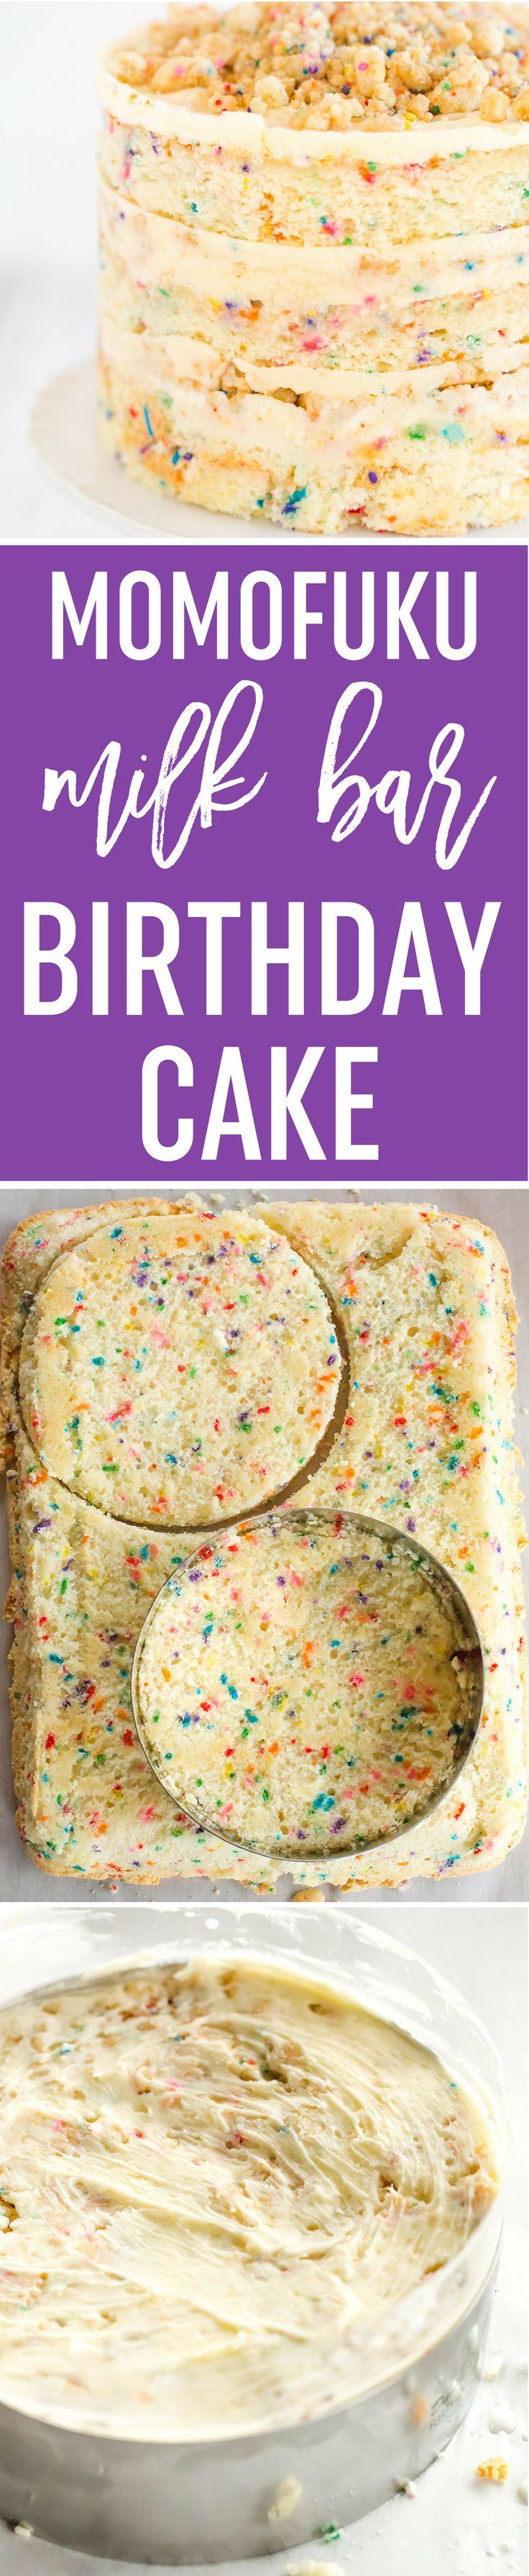 Momofuku Milk Bar Birthday Cake - Layers of funfetti cake loaded with sprinkles, vanilla frosting, and birthday cake crumbs! Make it for your favorite person! via @browneyedbaker